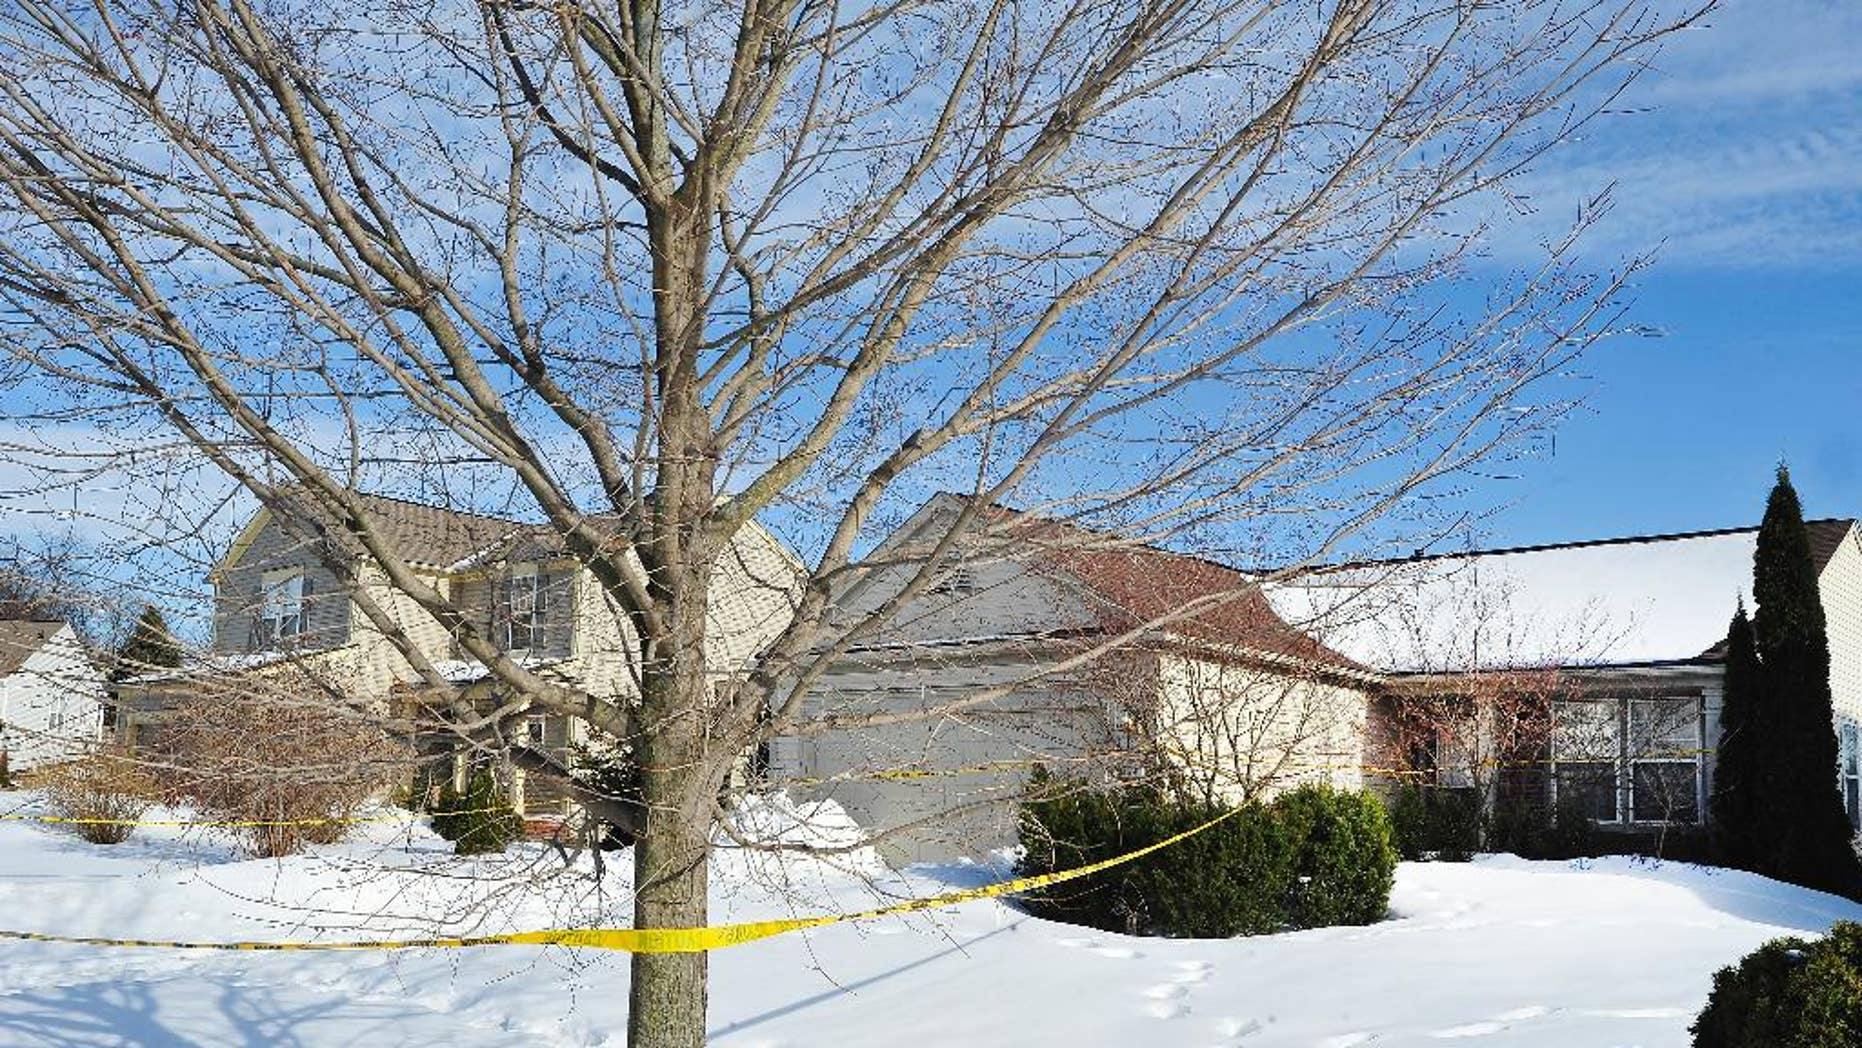 In this photo taken on March 7, 2014, police tape is scene outside a home in Pontiac, Mich., where the mummified body of a woman was found in the garage. Paula Logan has said the body found last week in Pontiac is that of Pia Farrenkopf, her sister. Authorities investigating the discovery haven't released her name, but they have said that the woman apparently died in 2008 at the age of 49. The Detroit Free Press reports voting records show Farrenkopf as voting in the November 2010 gubernatorial election. Officials say, however, that it may represent an administrative error. (AP Photo/Detroit News, Daniel Mears) DETROIT FREE PRESS OUT; HUFFINGTON POST OUT; MAGS OUT MANDATORY CREDIT.